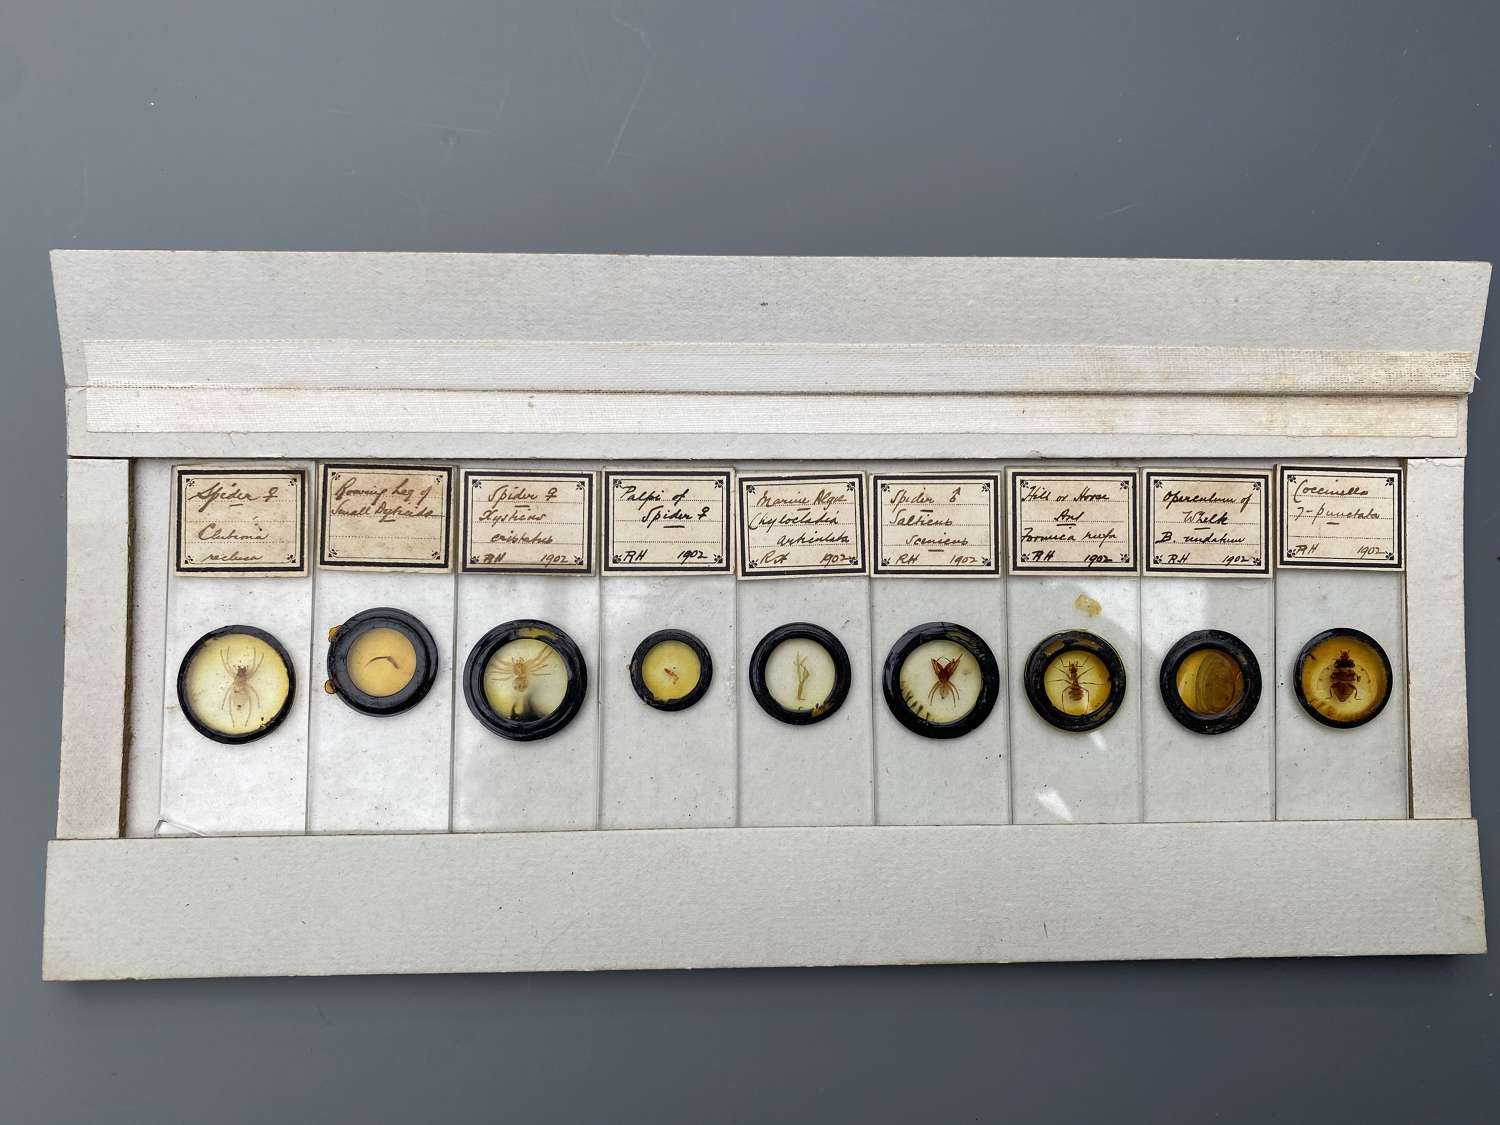 Box of 54 Microscope Slides Entomology. R H. Richard Hancock 1902-03